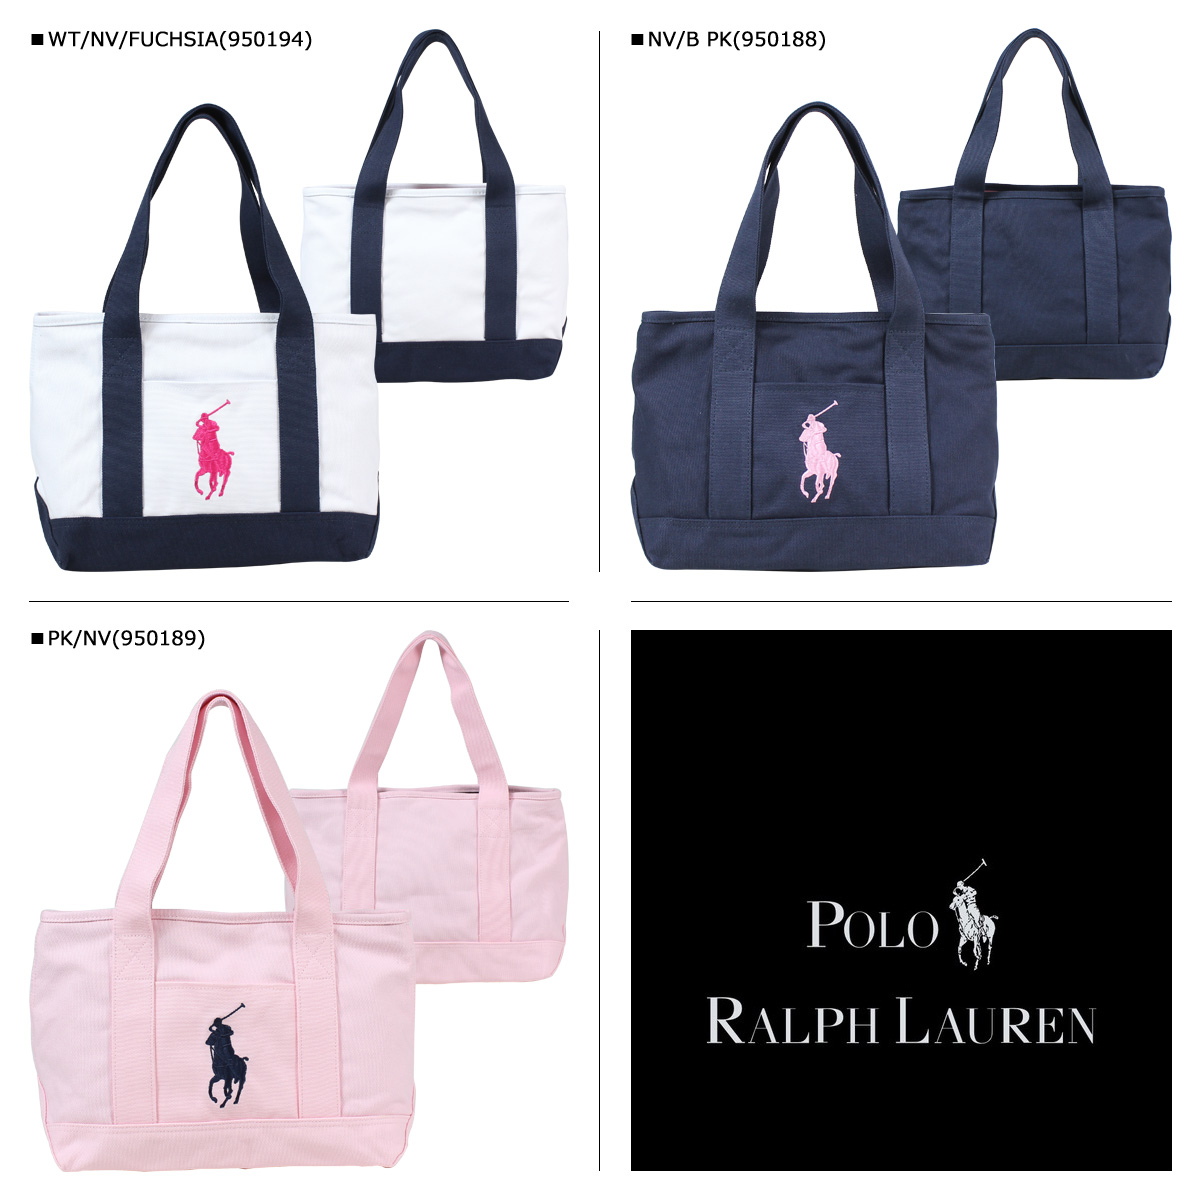 Polo Ralph Lauren Bag Tote Kids The Target Outside